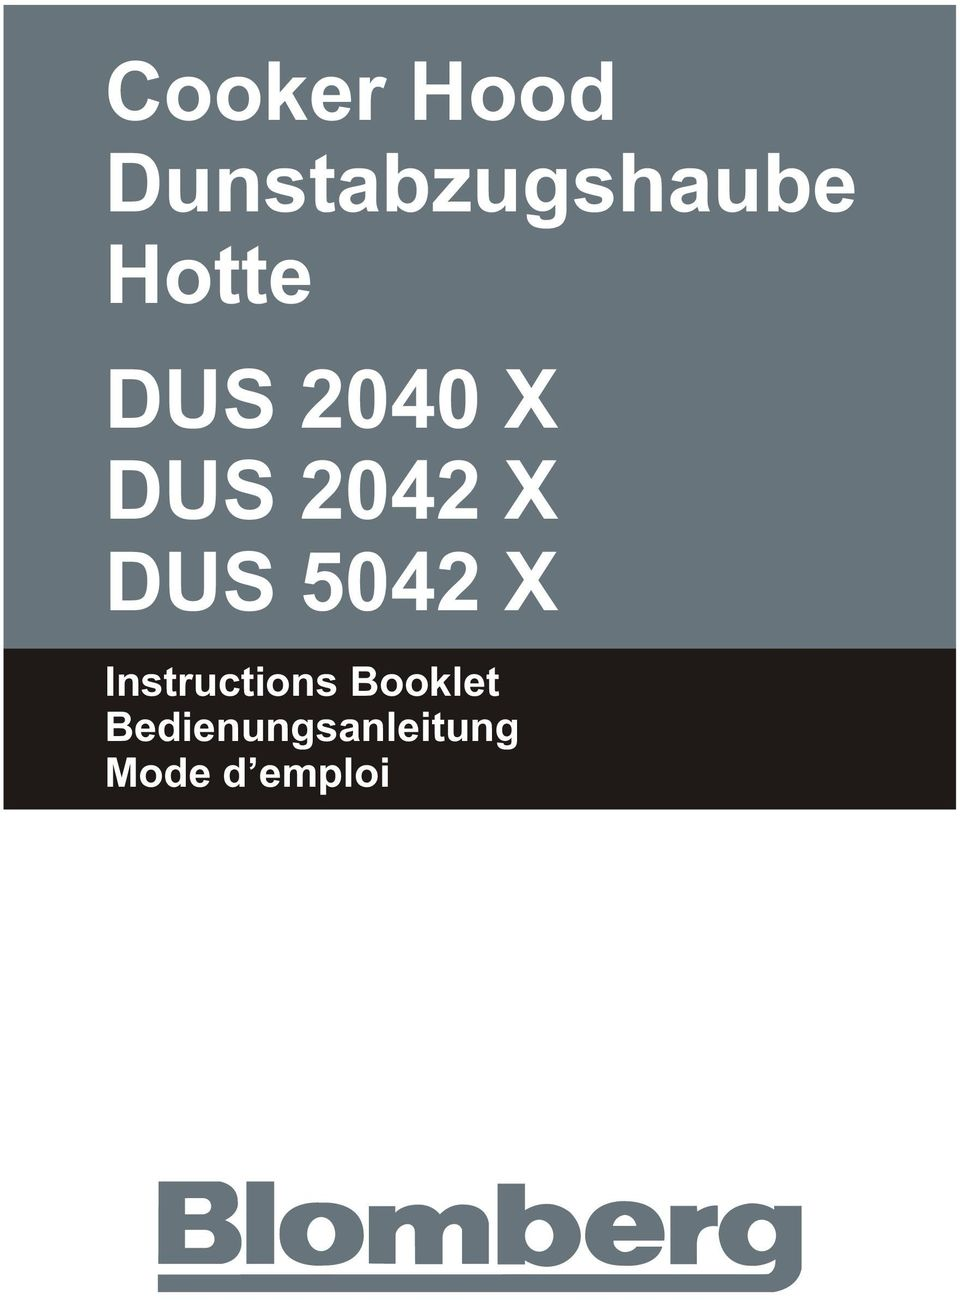 DUS 5042 X Instructions